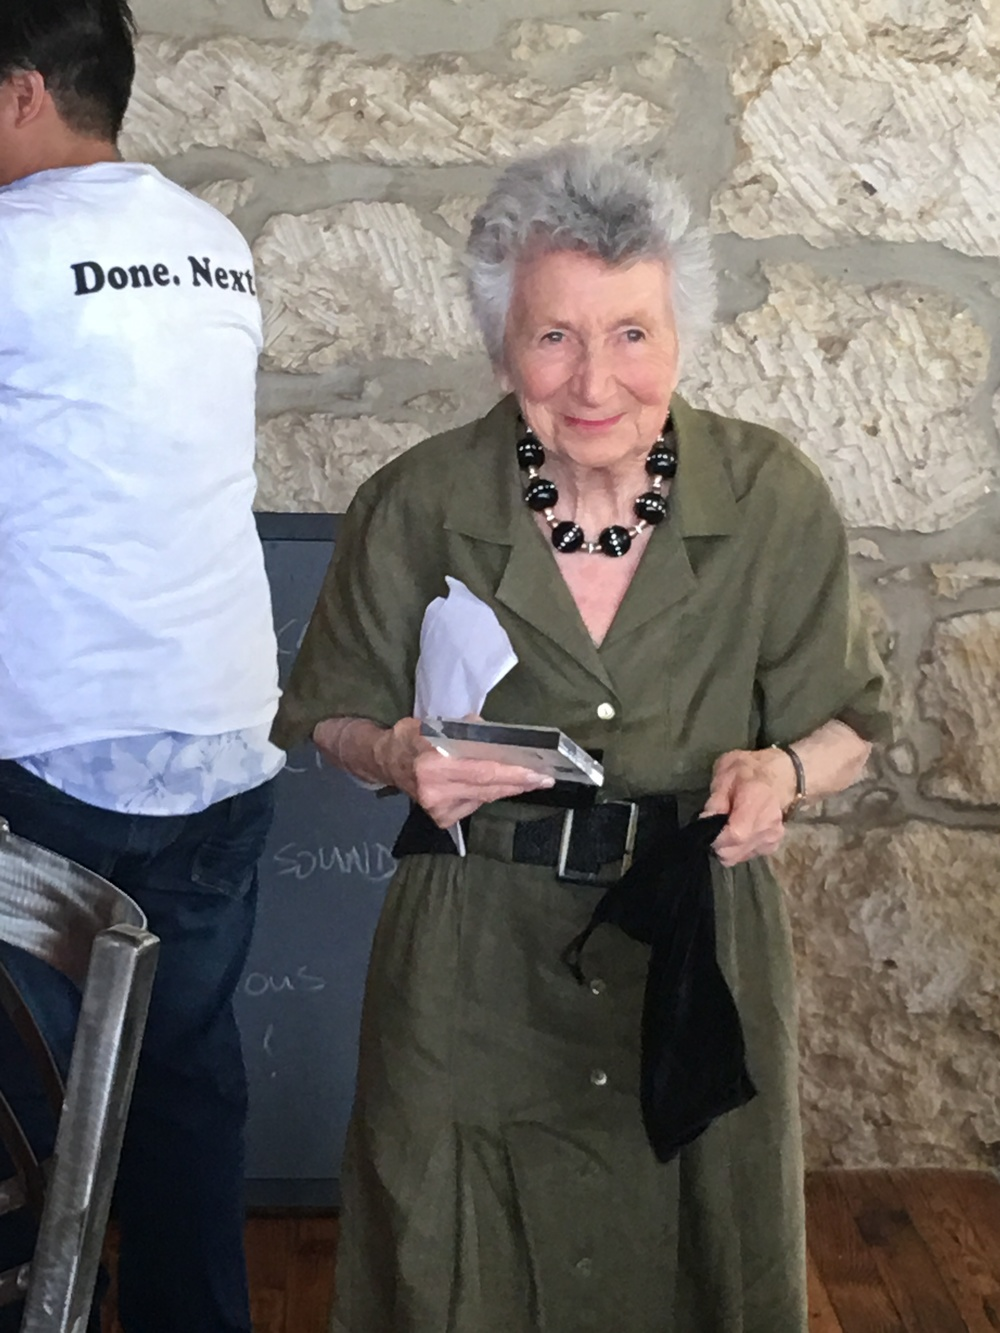 Adam Rocha in the background wearing our official DONE. NEXT! T-shirt, moments after giving Marcia the Lifetime Achievement Award.